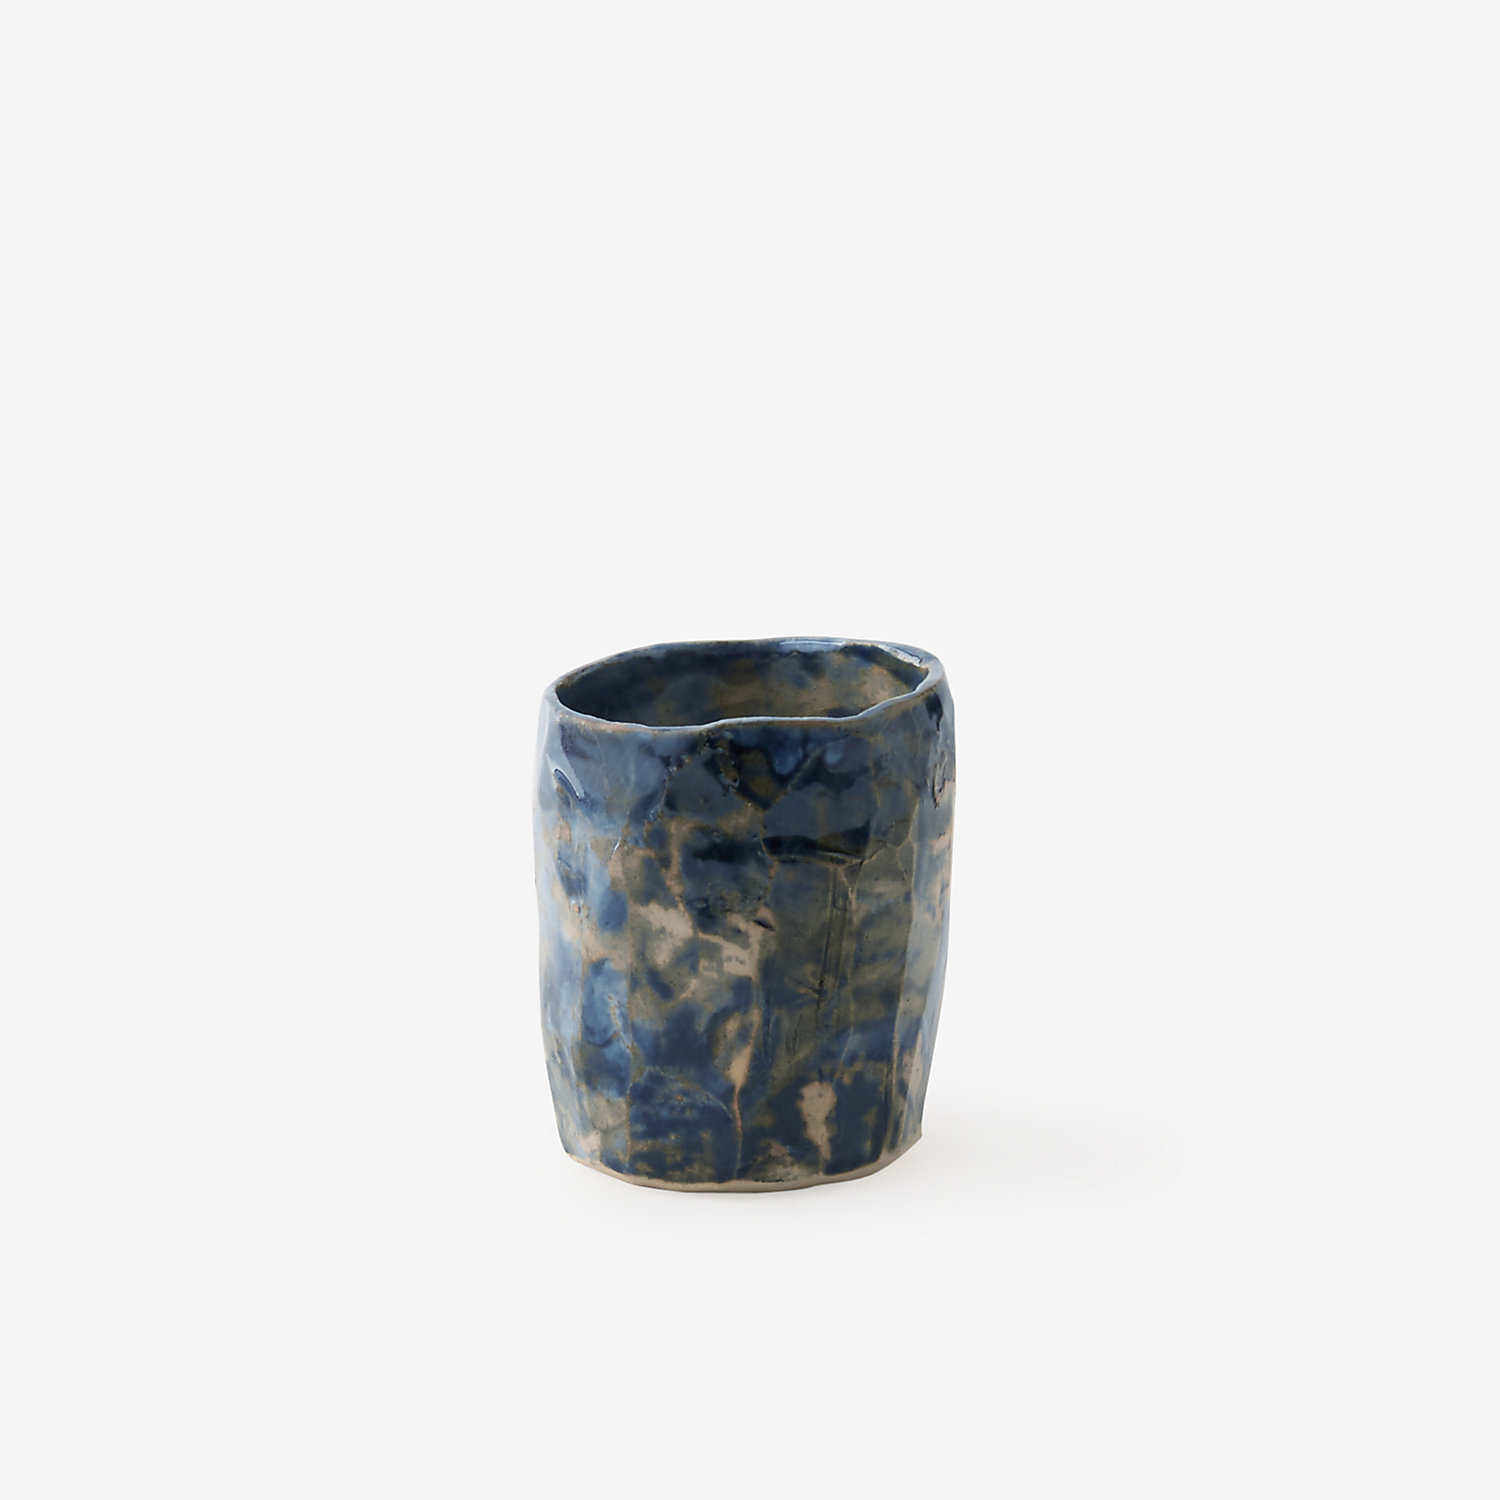 BLACK CHISELED CUP